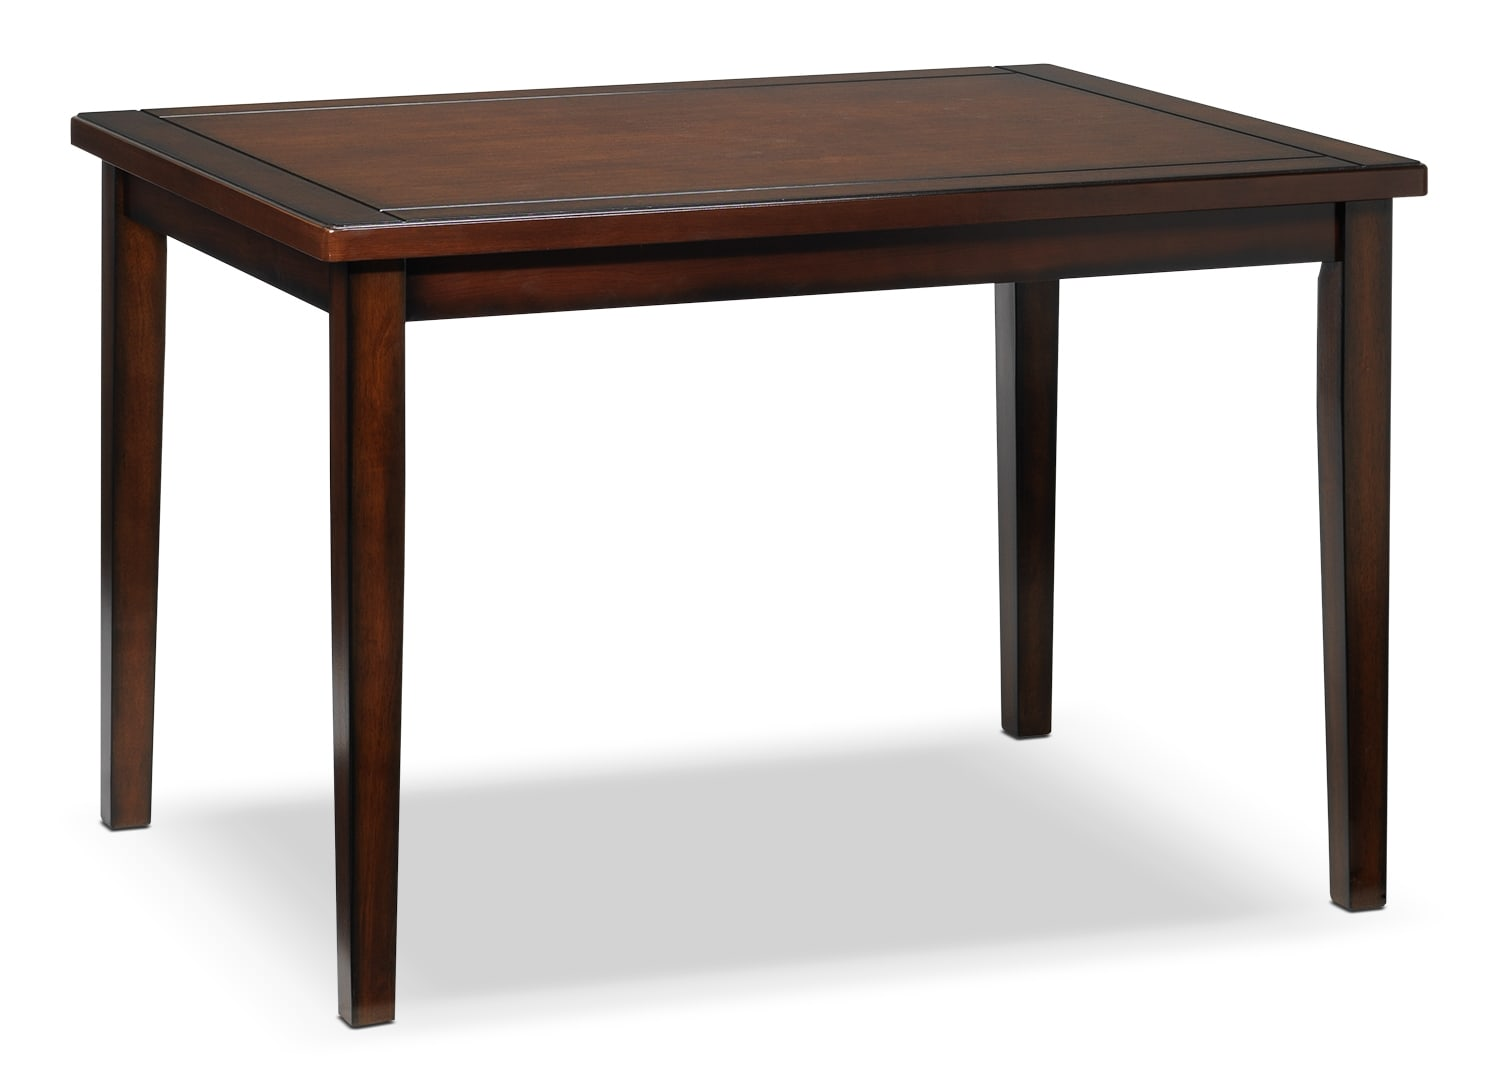 Boyd Table - Dark Brown Cherry